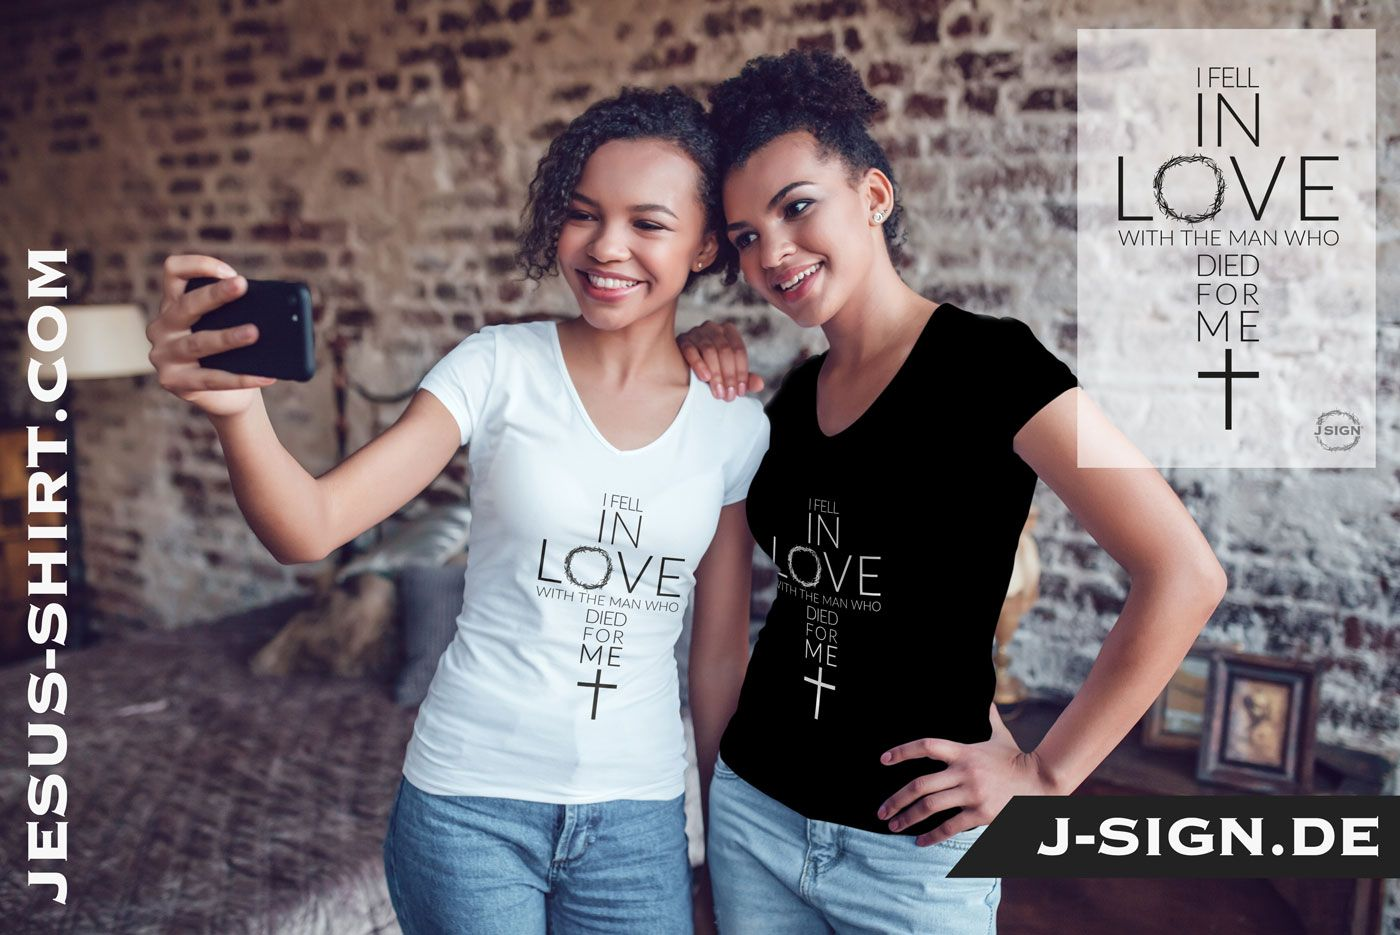 christian clothing for womanjsign design with. i fell in